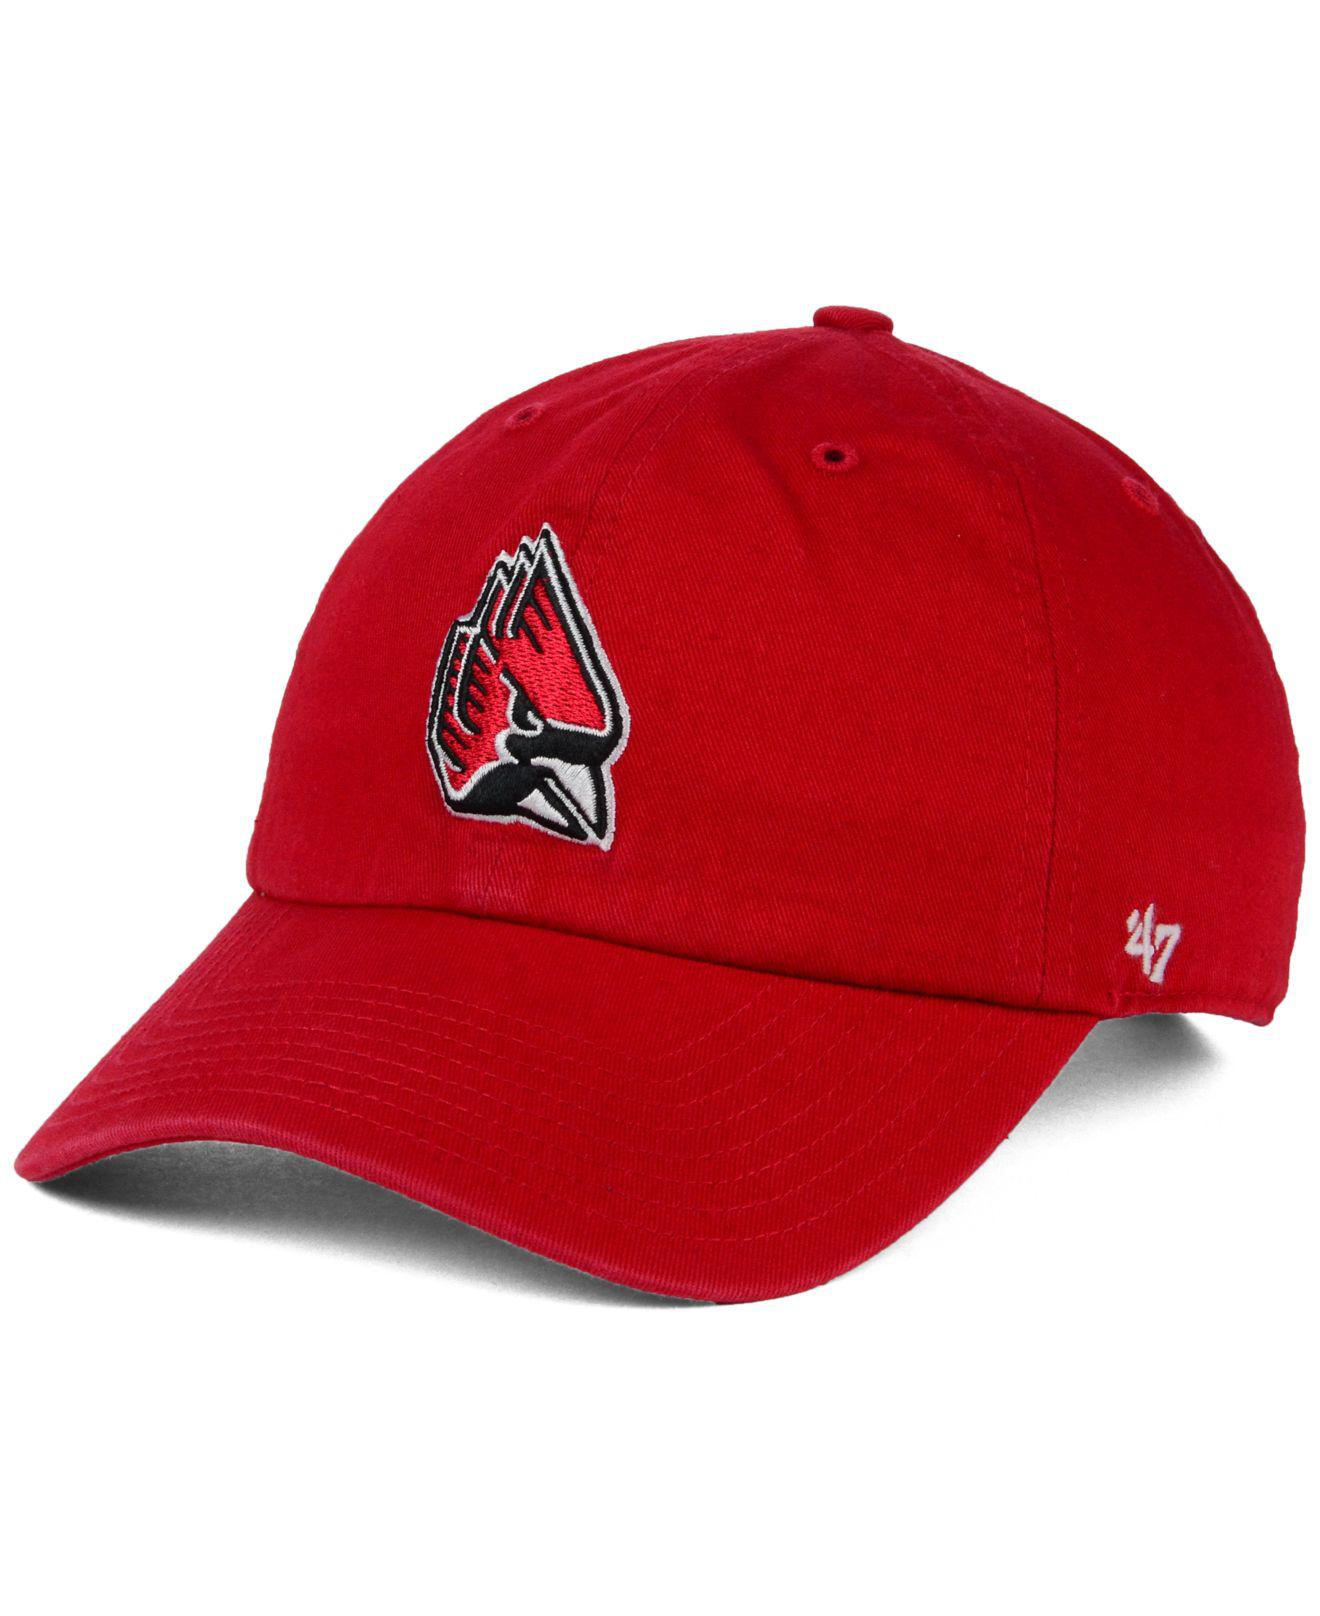 Lyst - 47 Brand Ball State Cardinals Ncaa Clean-up Cap in Red for Men a231fb0fa36d